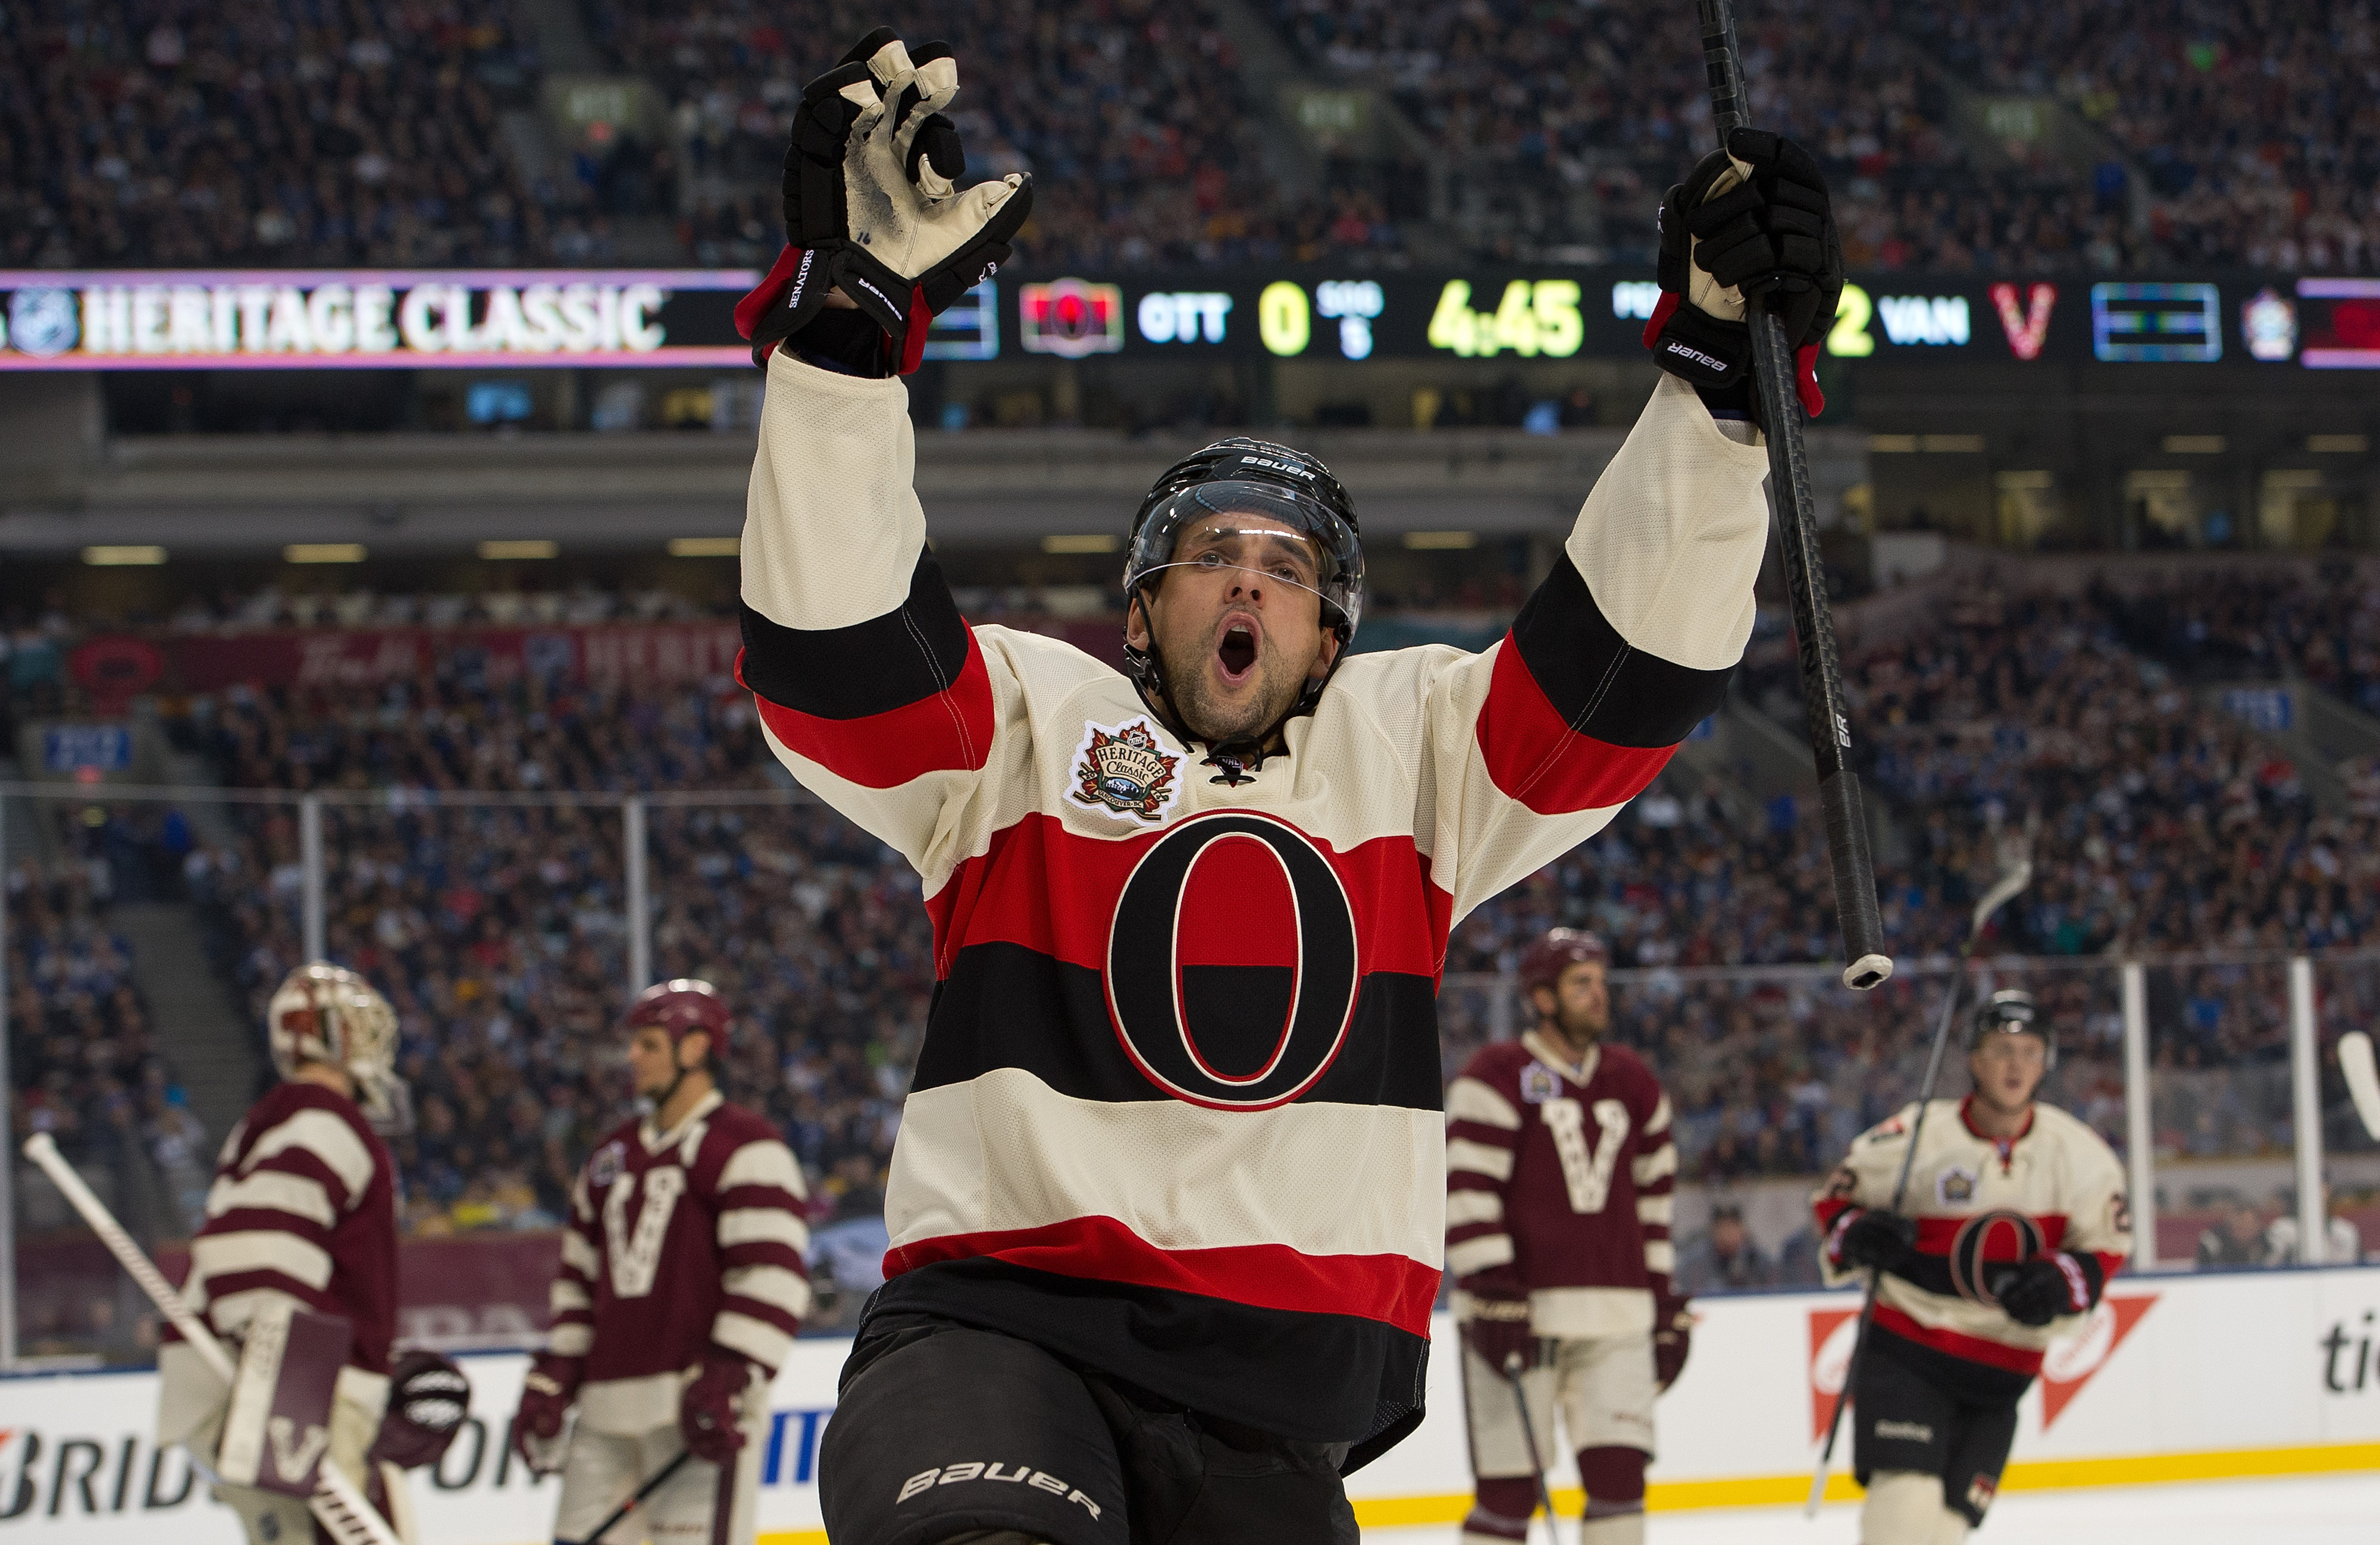 Clarke MacArthur knows what an honor it is to get named Biggest Gainer.